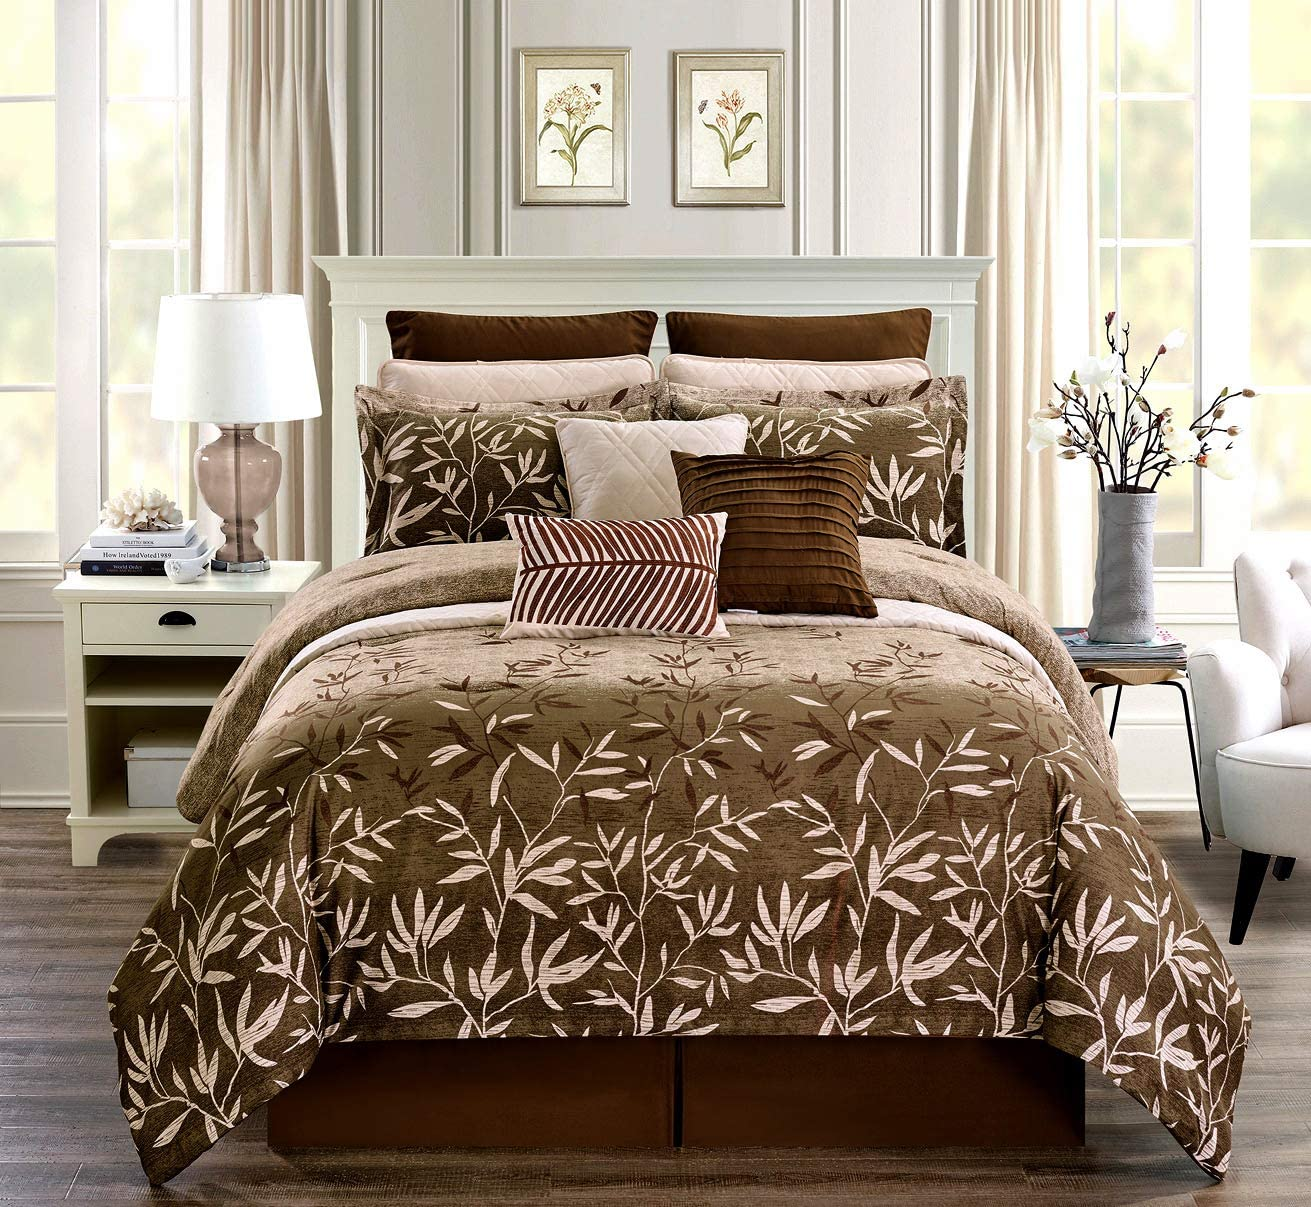 GrandLinen 9-Piece Twin Size Bamboo Print Luxury Primrose Bedding Chocolate Brown/Cream Taupe Comforter Set Bed in a Bag